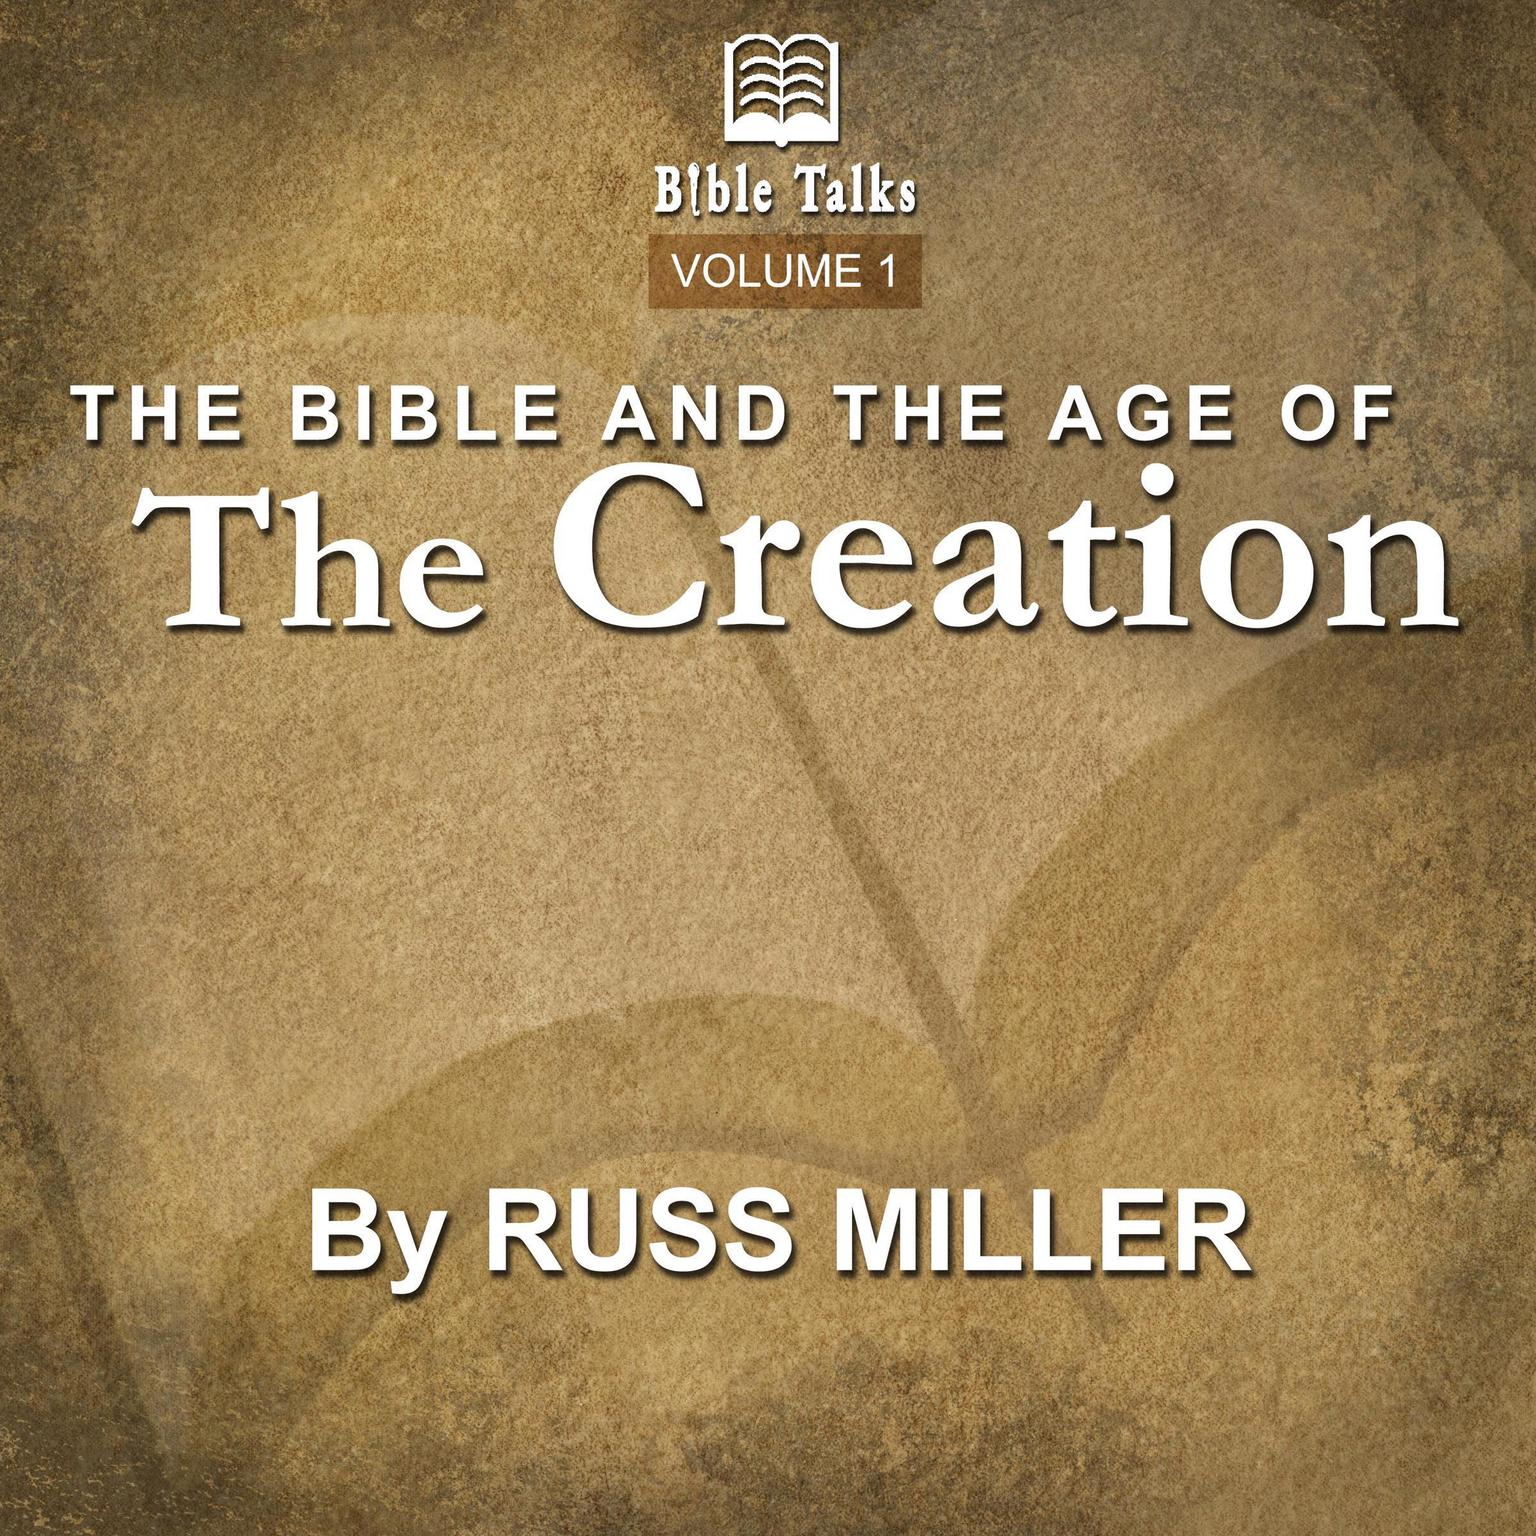 Printable The Bible And The Age Of The Creation - Volume 1 Audiobook Cover Art